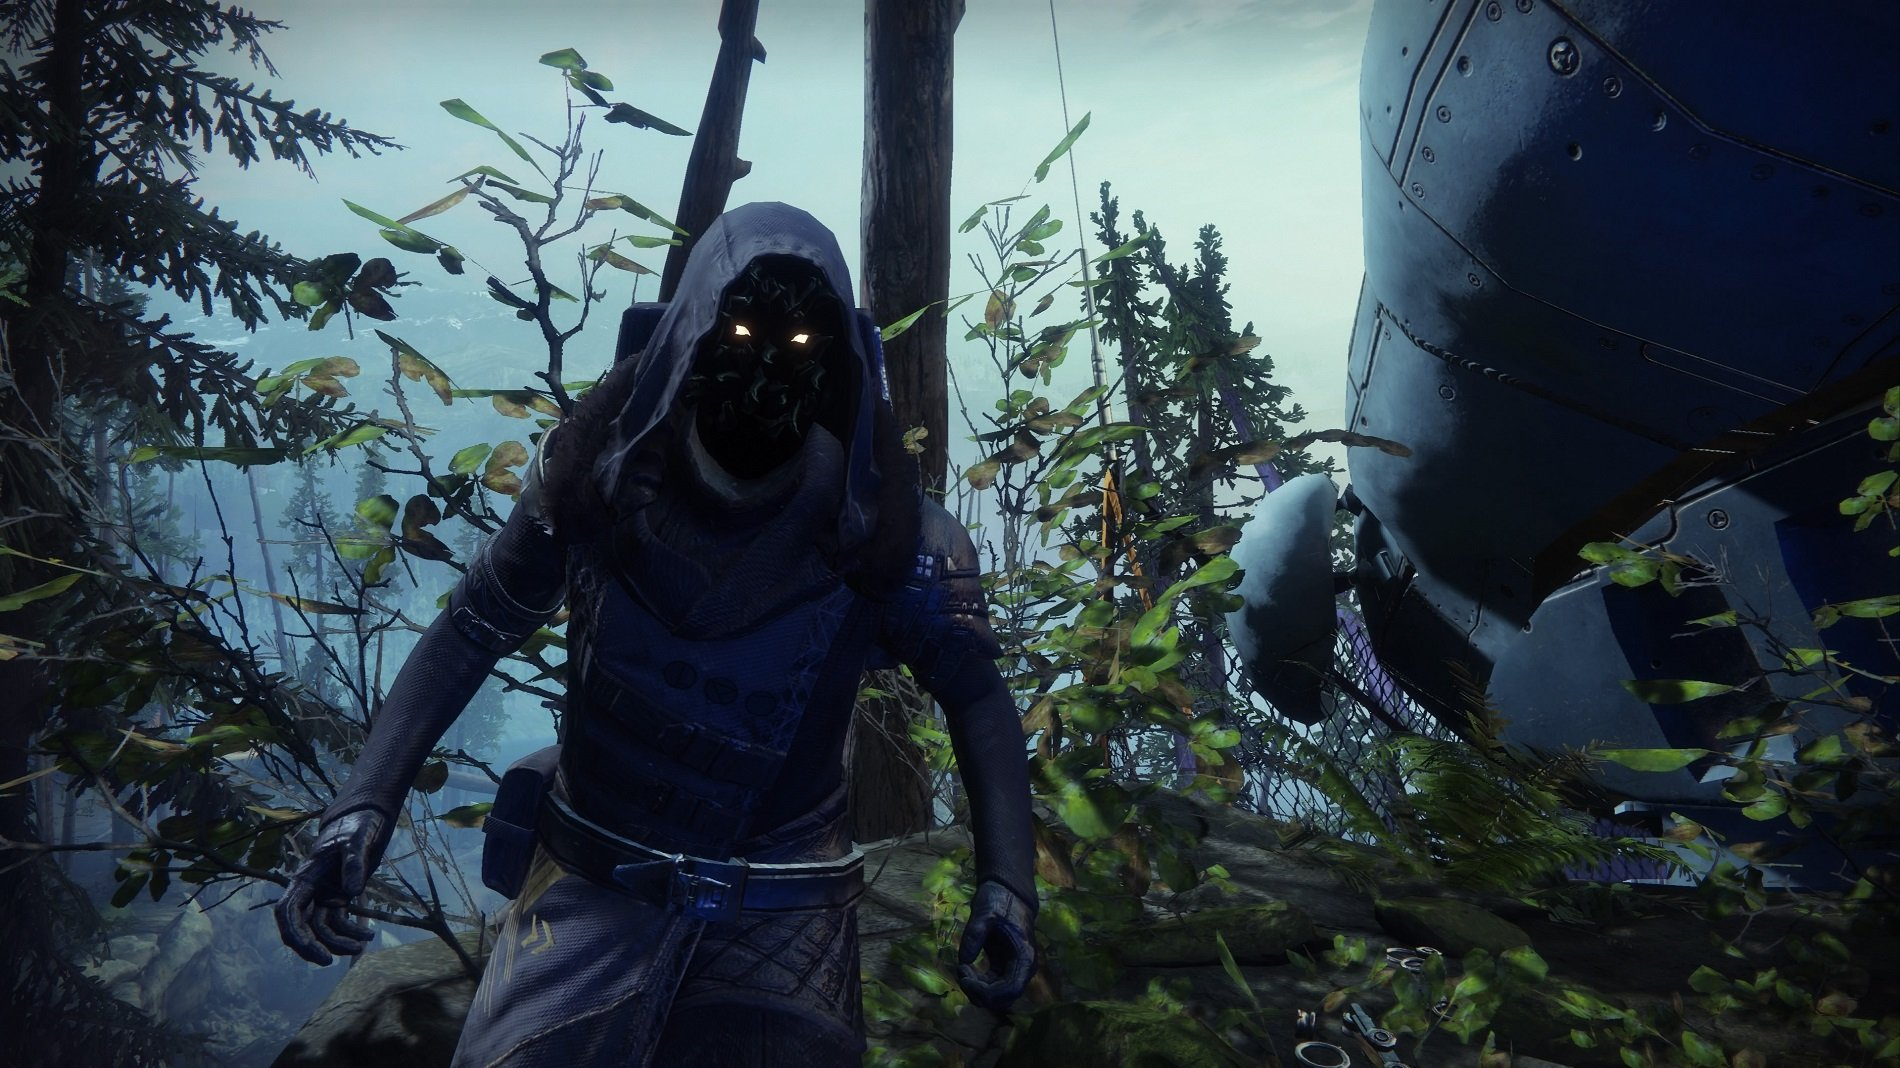 Where to find Xur in Destiny 2 - May 1, 2020